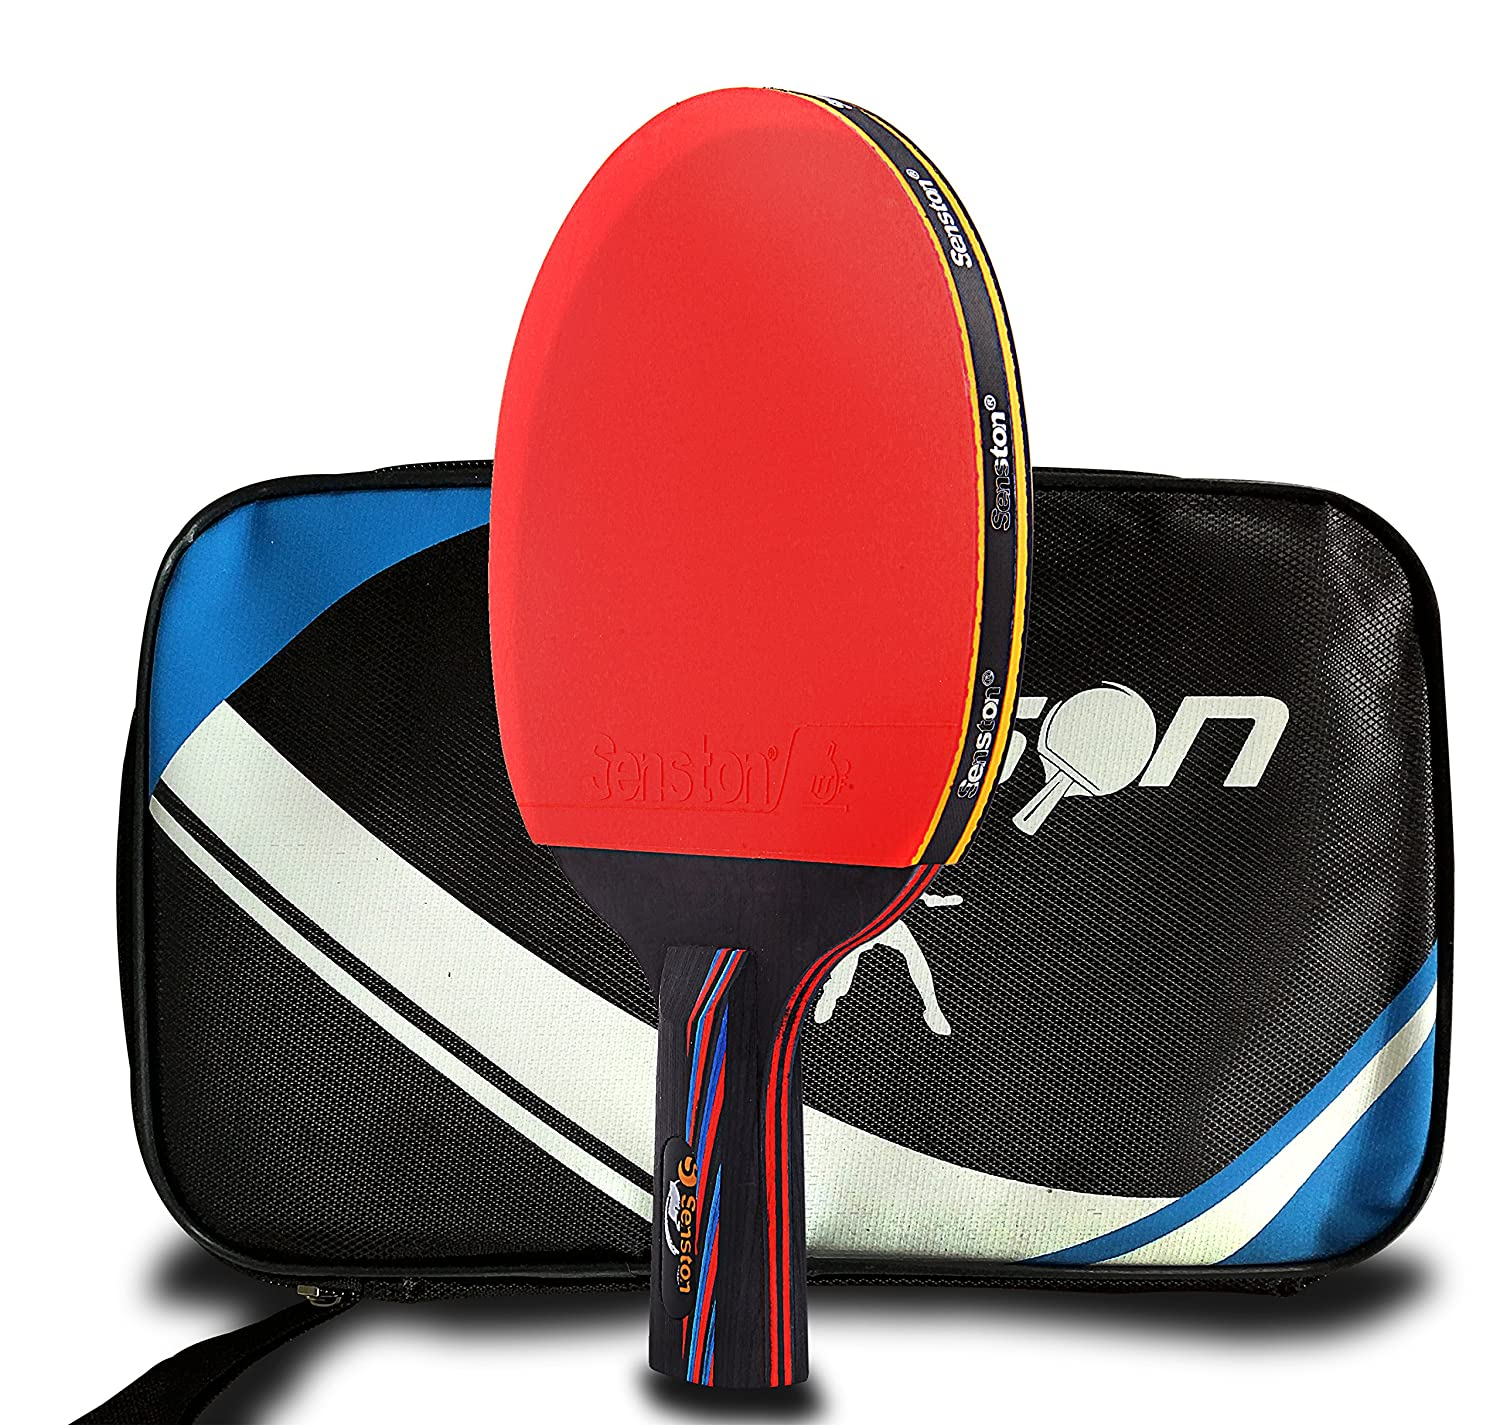 6d6b39af74 Senston table tennis racket ping pong paddle table tennis bat short hand  grip including carrying bag